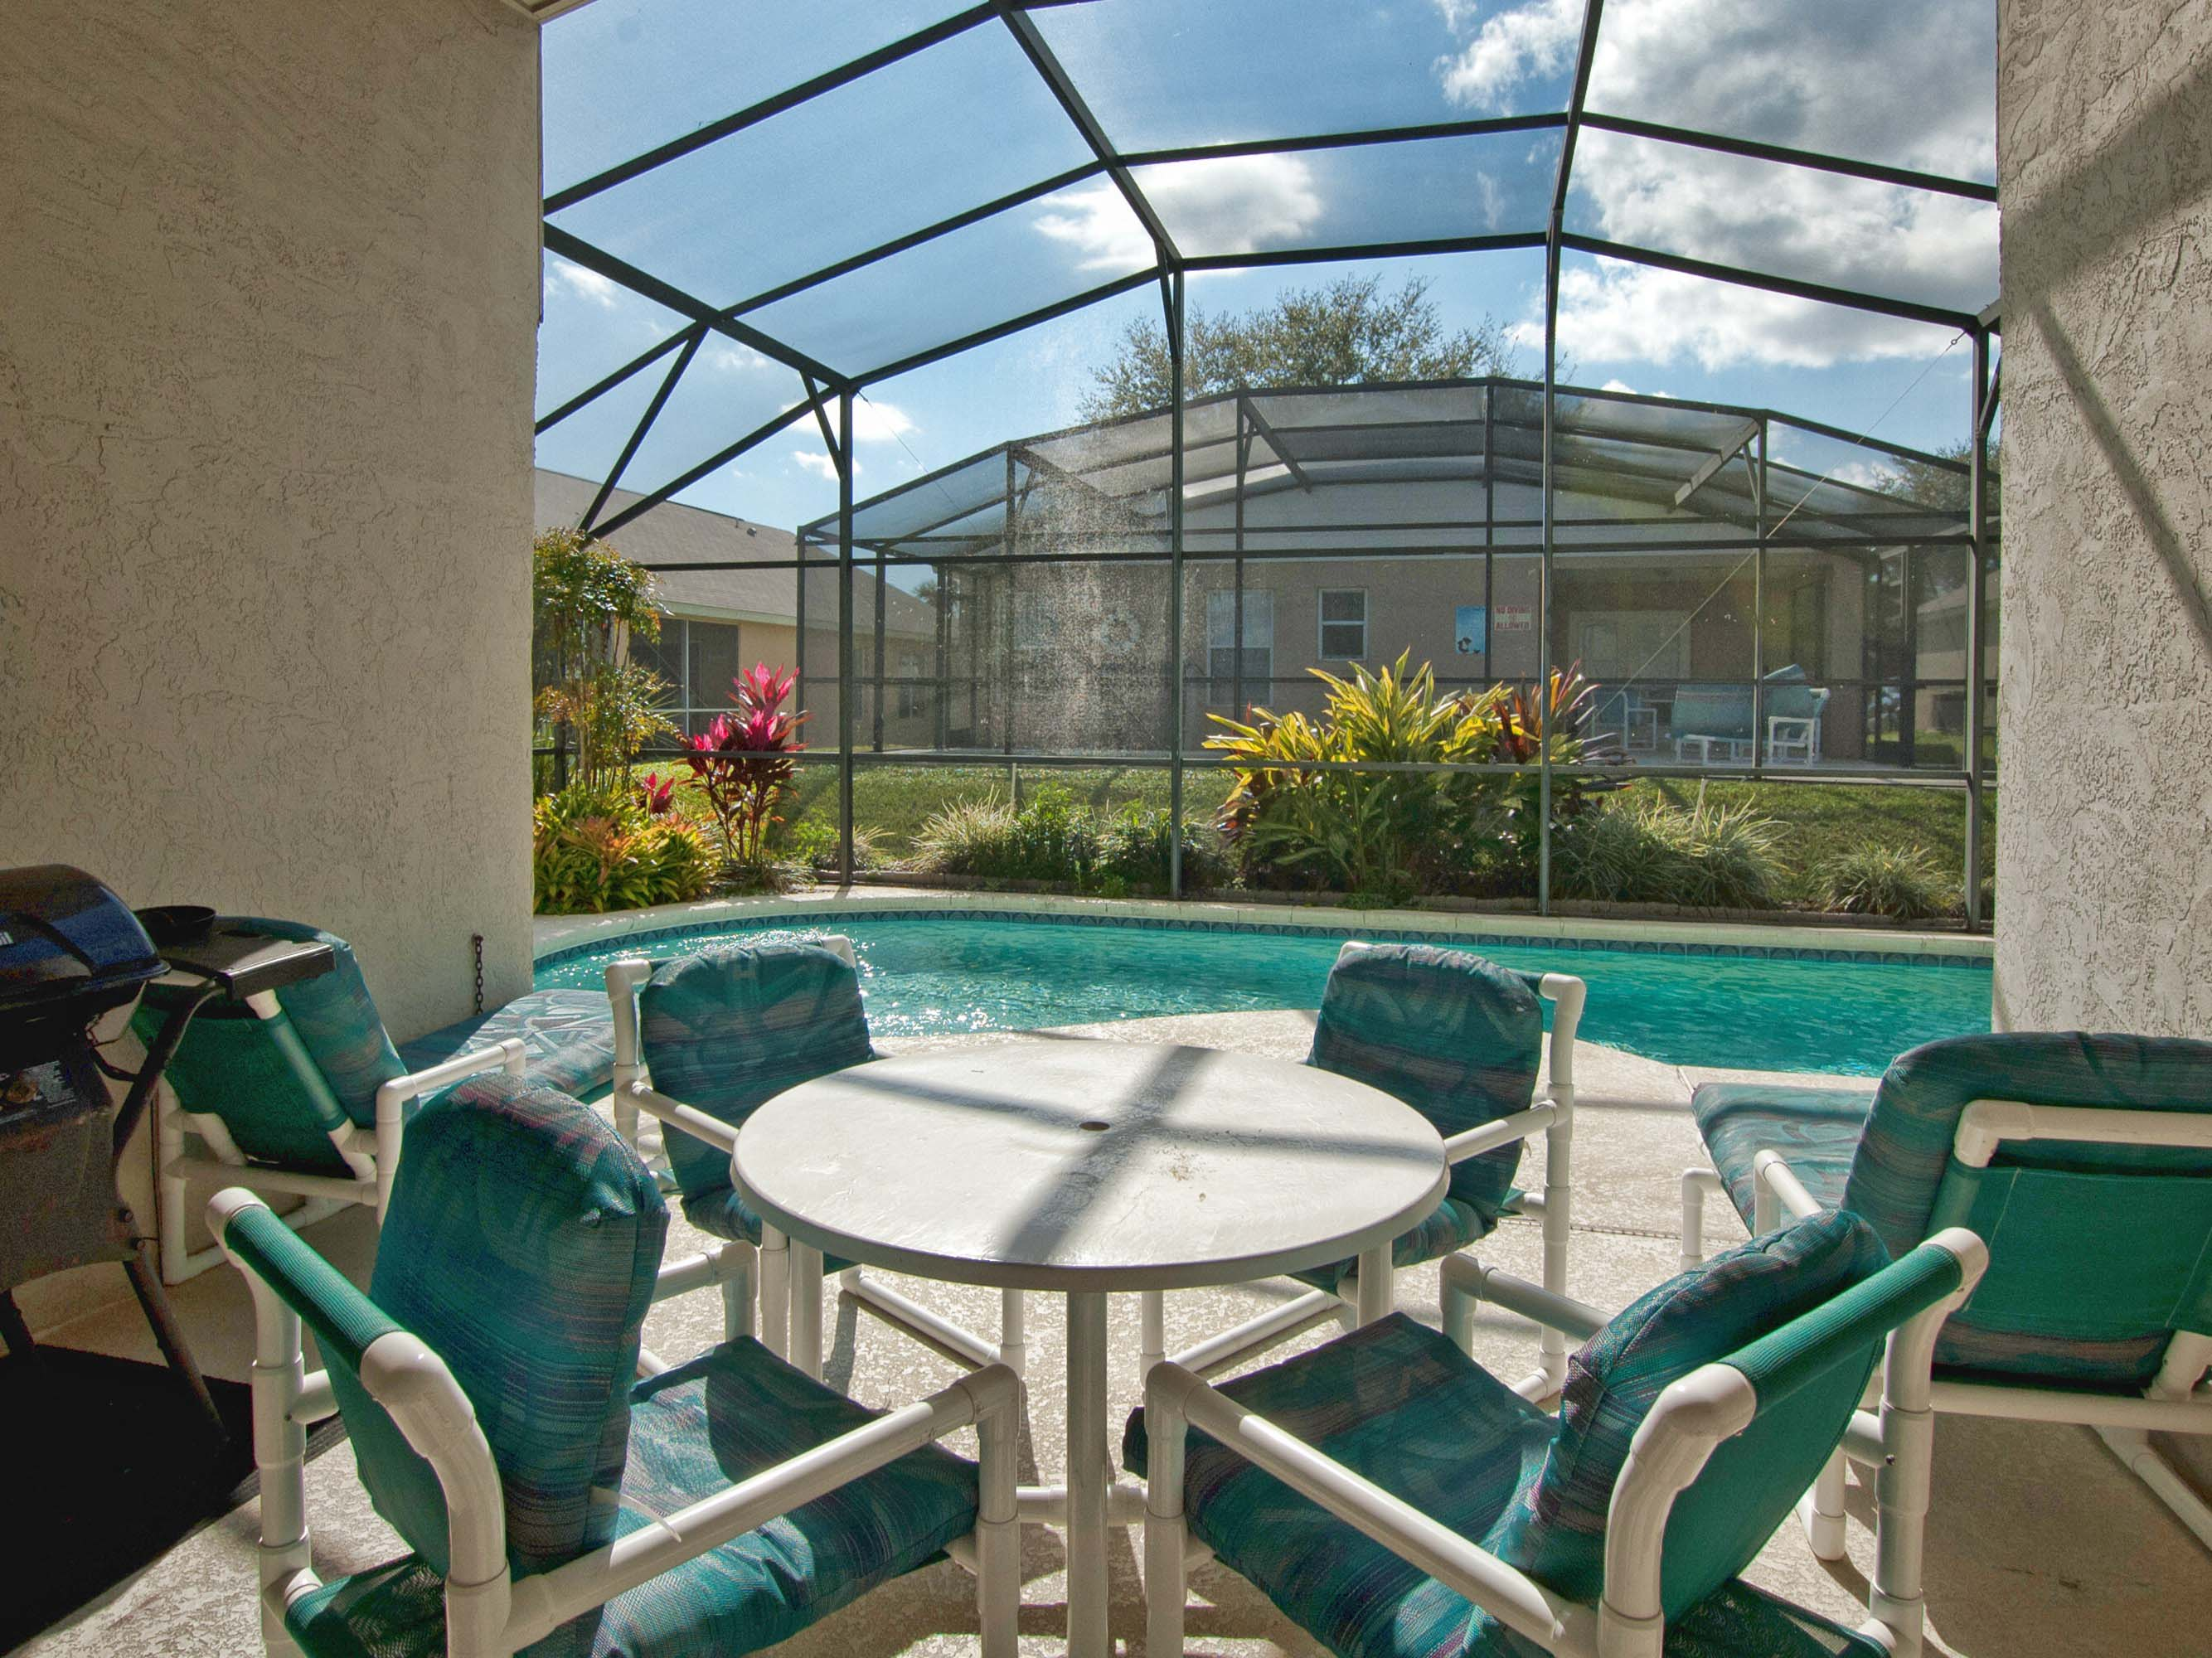 Florida Vacation Home Pictures